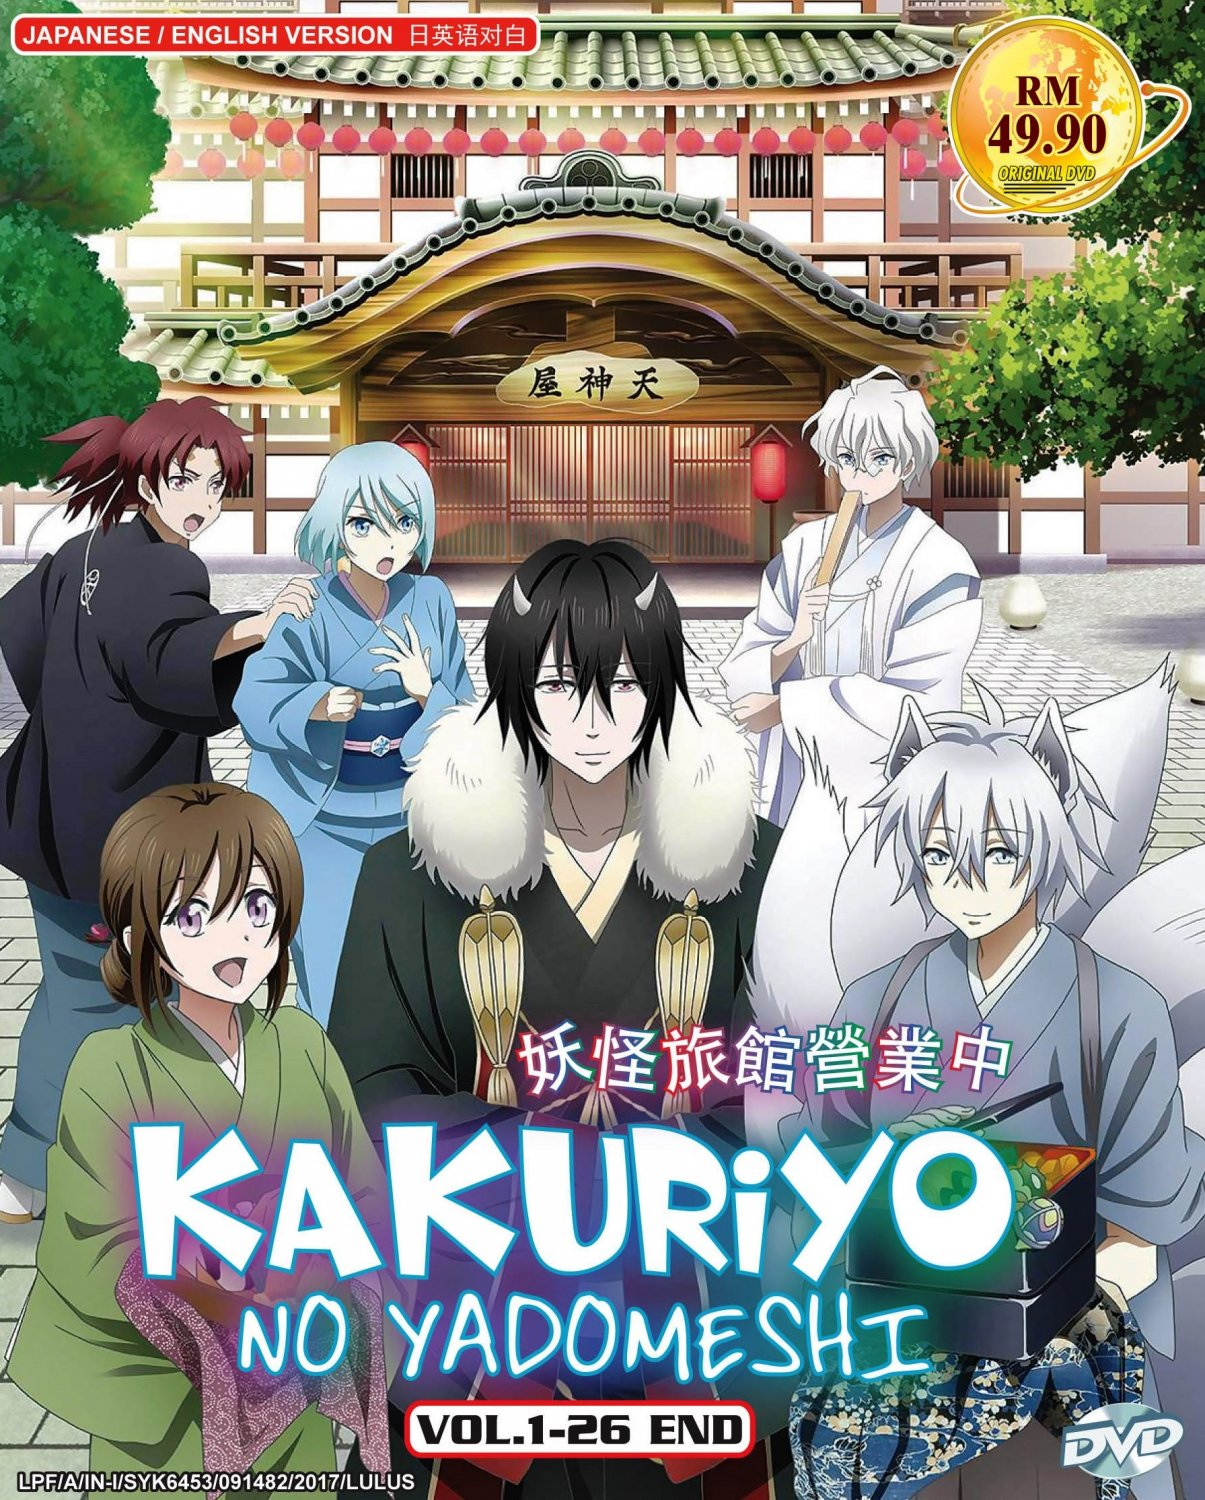 DVD Kakuriyo No Yadomeshi Vol.1-26 End Japanese Anime Eng Dub region All